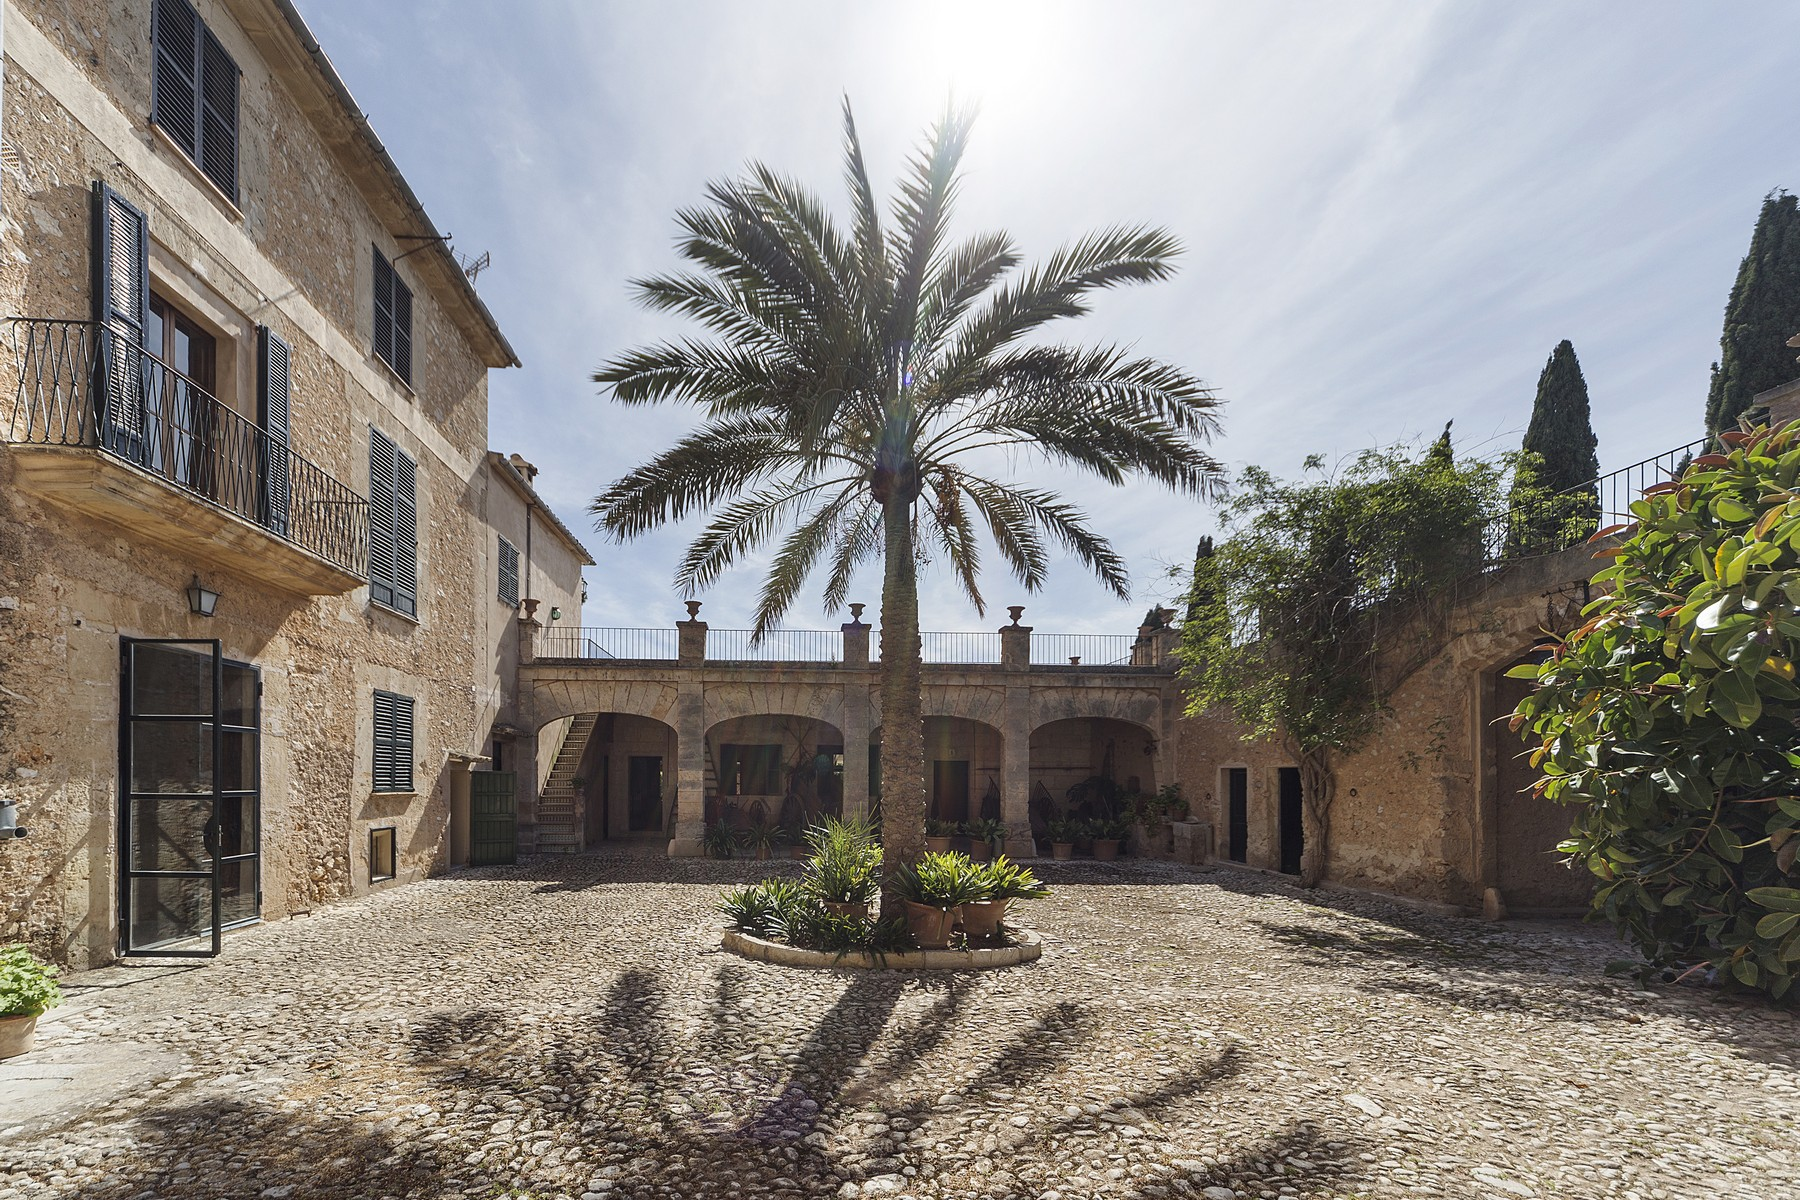 Single Family Home for Sale at Magnificent historical property Other Balearic Islands, Balearic Islands, Spain